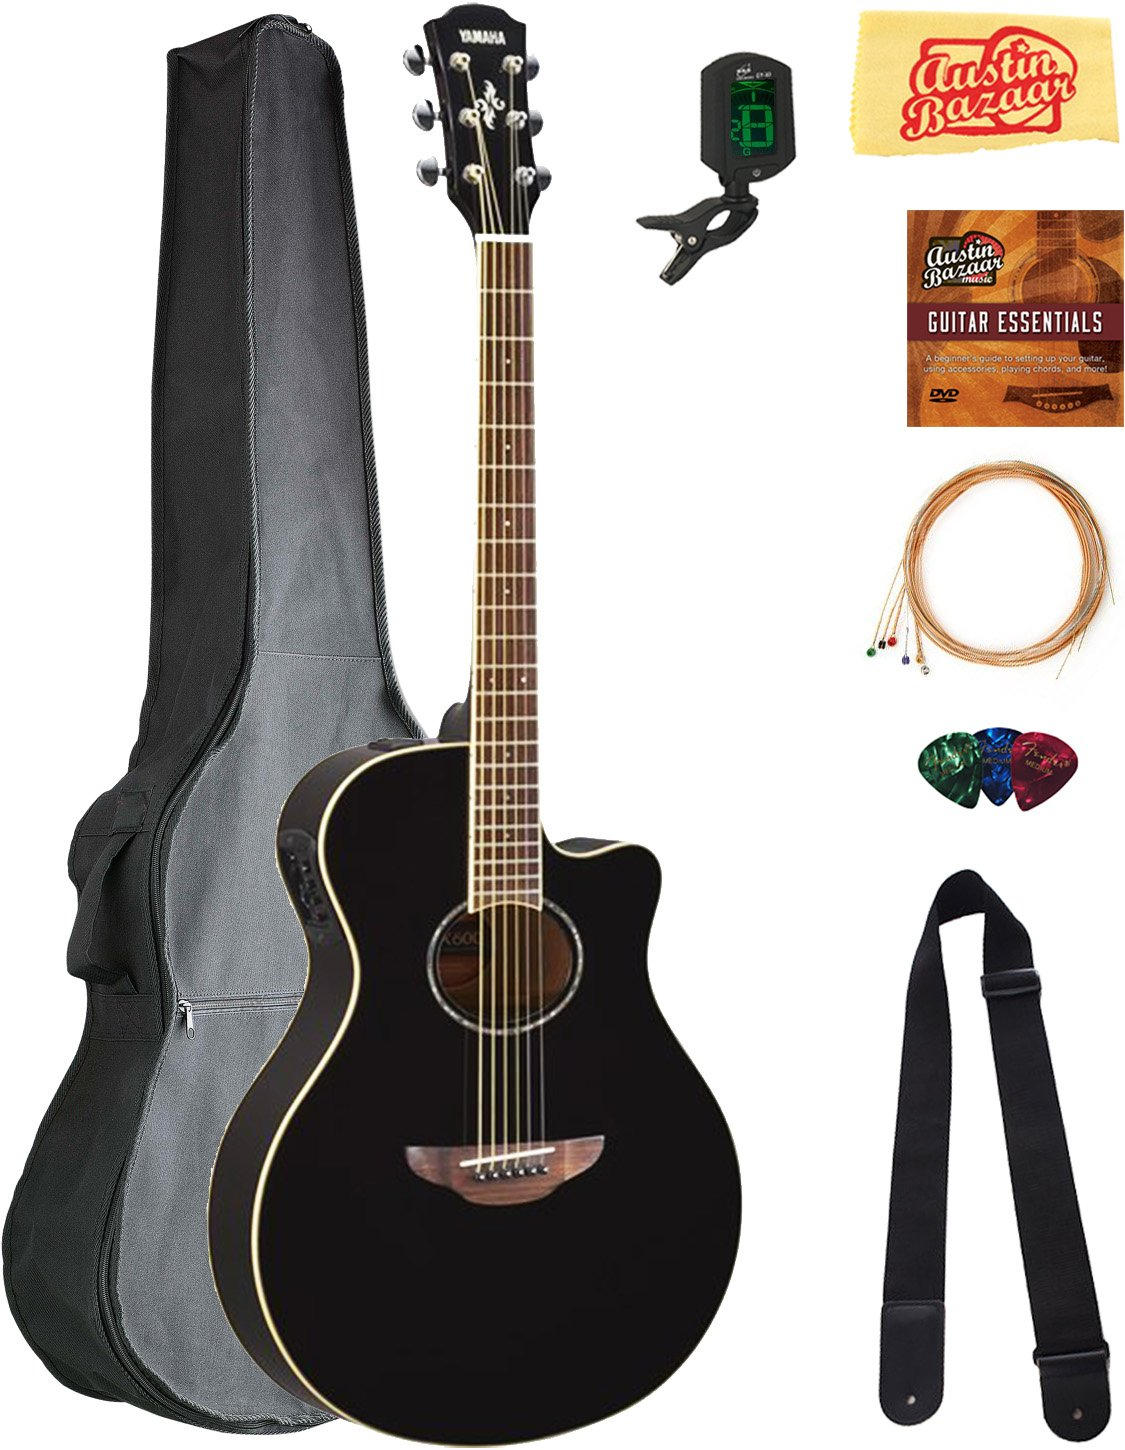 Yamaha APX600 Thin Body Acoustic-Electric Guitar - Black Bundle with Gig Bag, Tuner, Strings, Strap, Picks, Austin Bazaar Instructional DVD, and Polishing Cloth